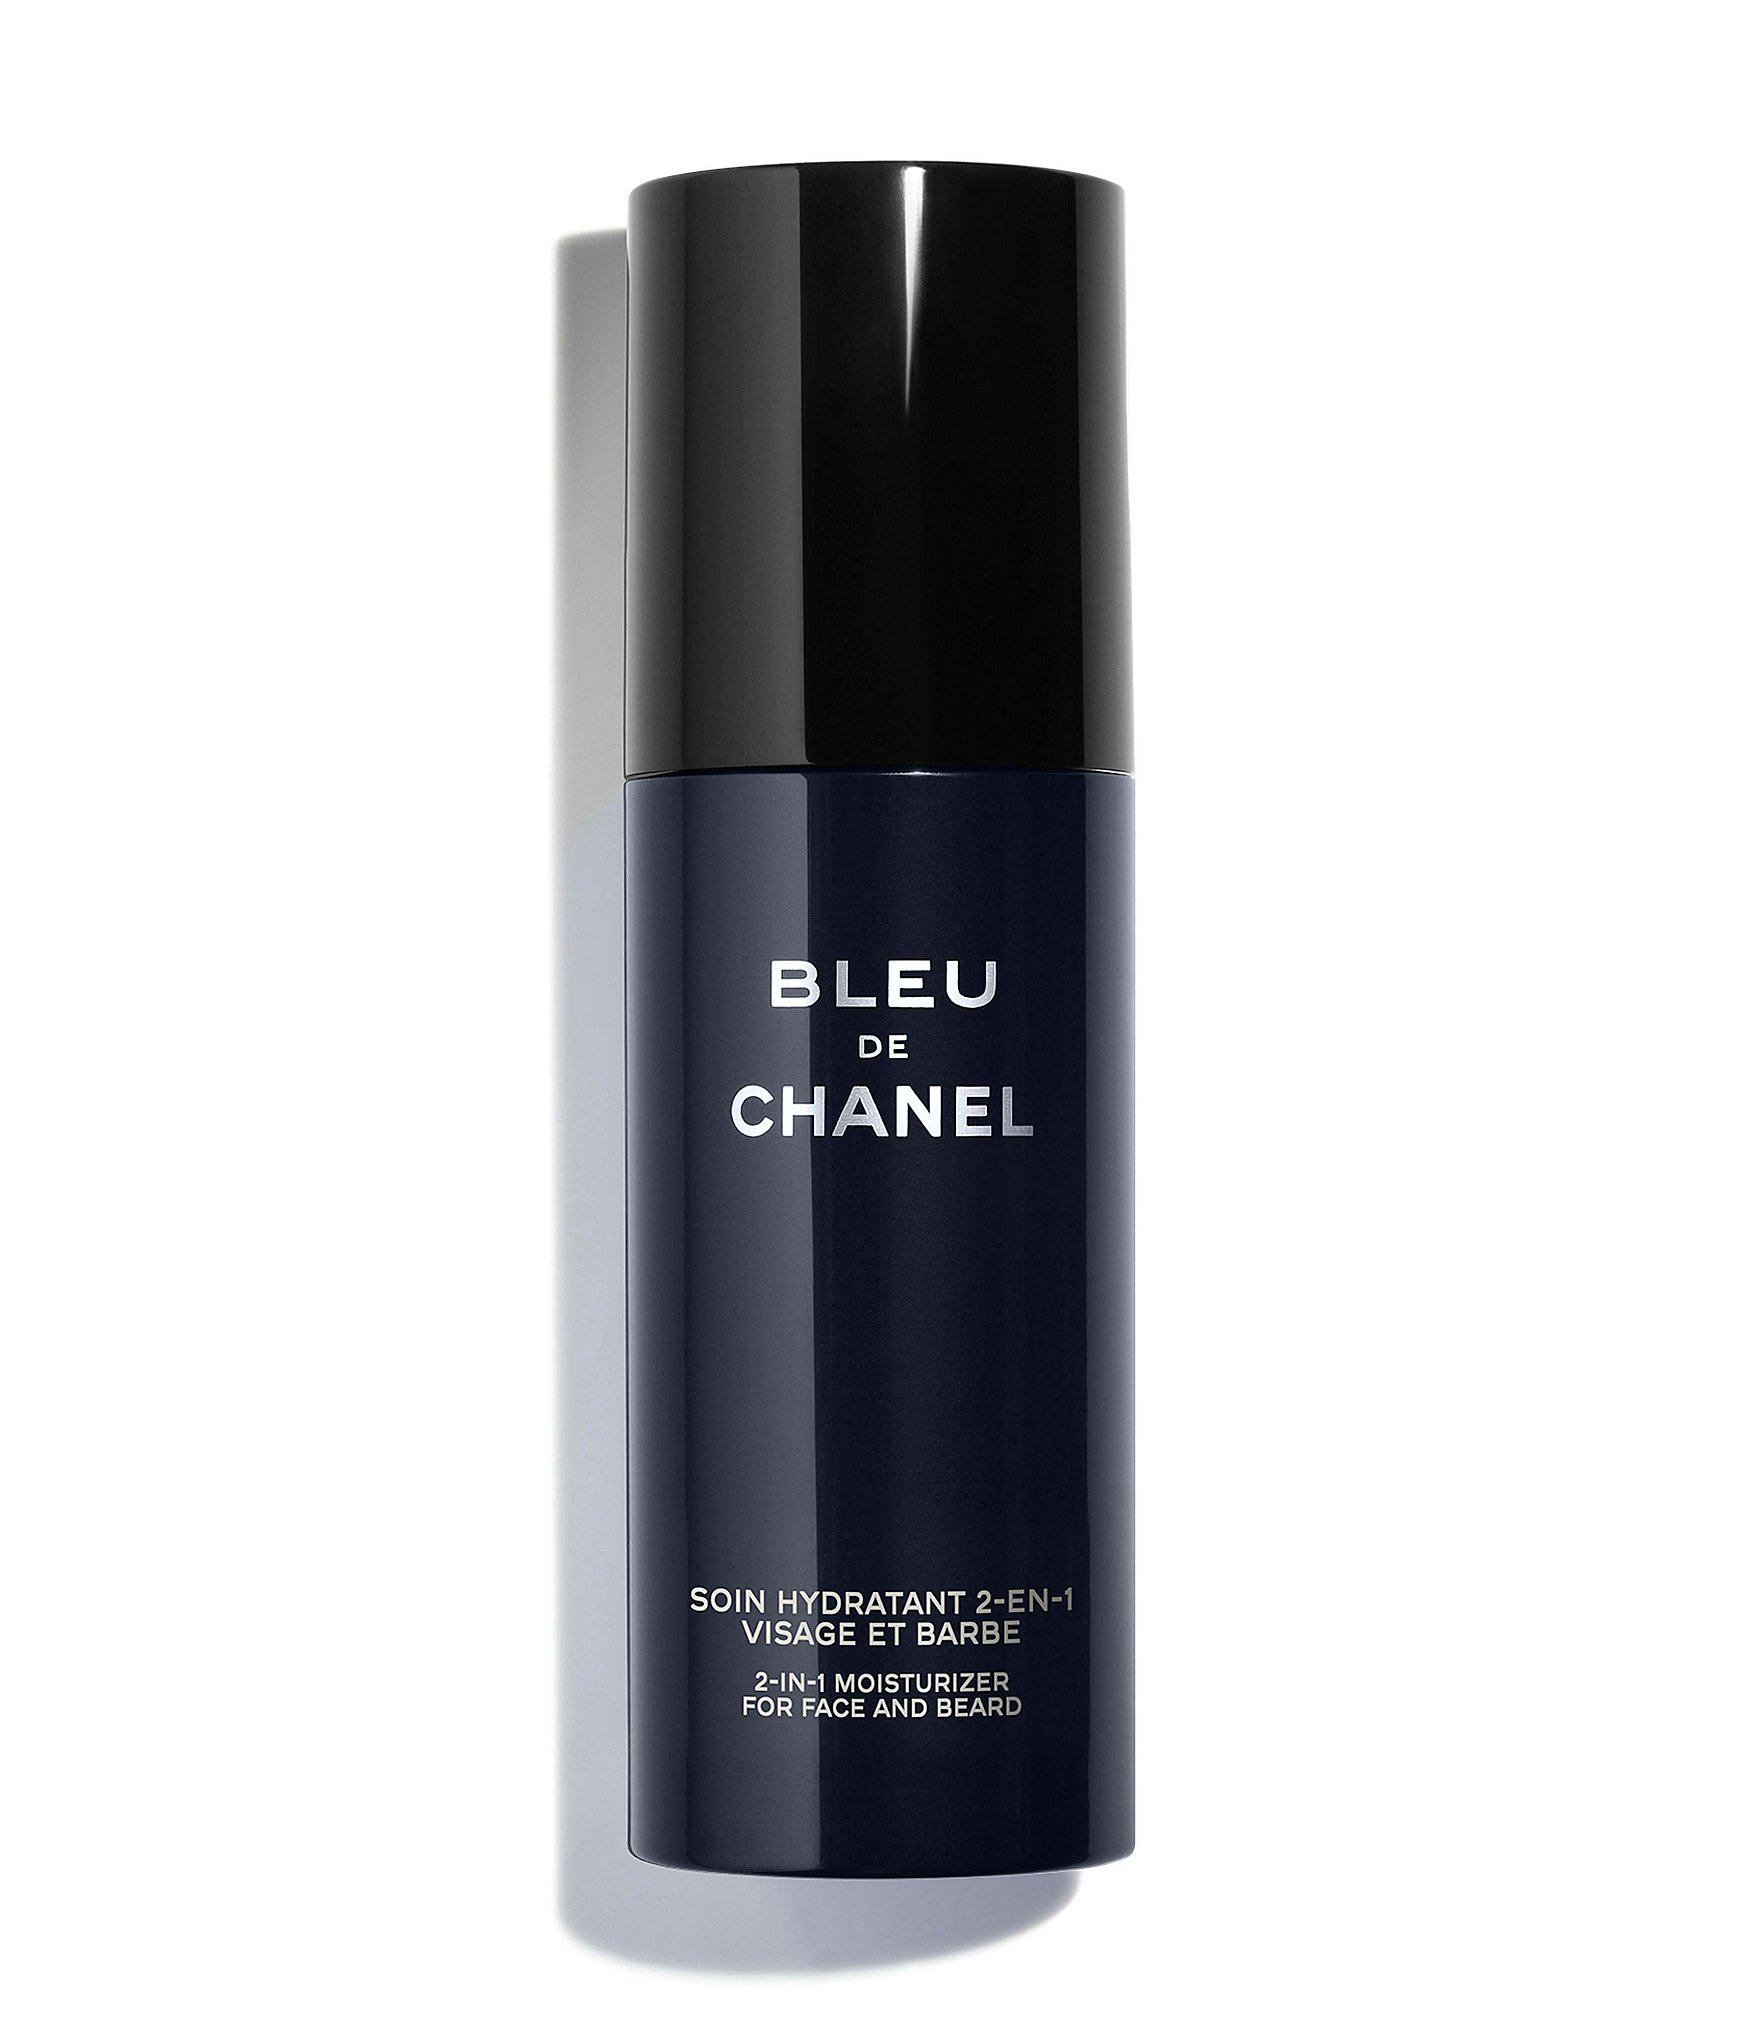 c13949fa CHANEL BLEU DE CHANEL 2-in-1 MOISTURIZER FOR FACE AND BEARD